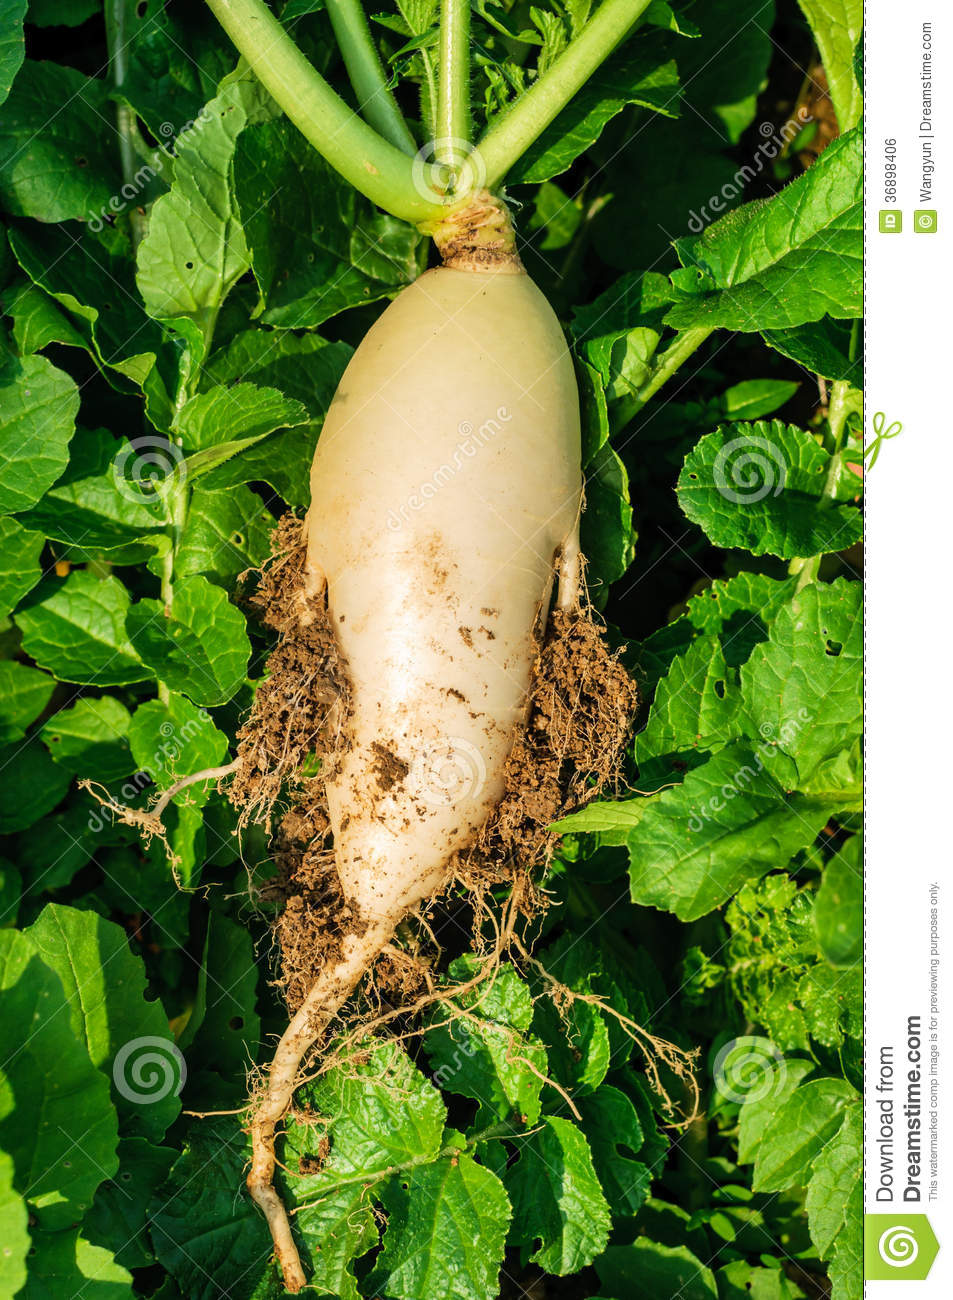 Radish Grown In The Ground Royalty Free Stock Image.